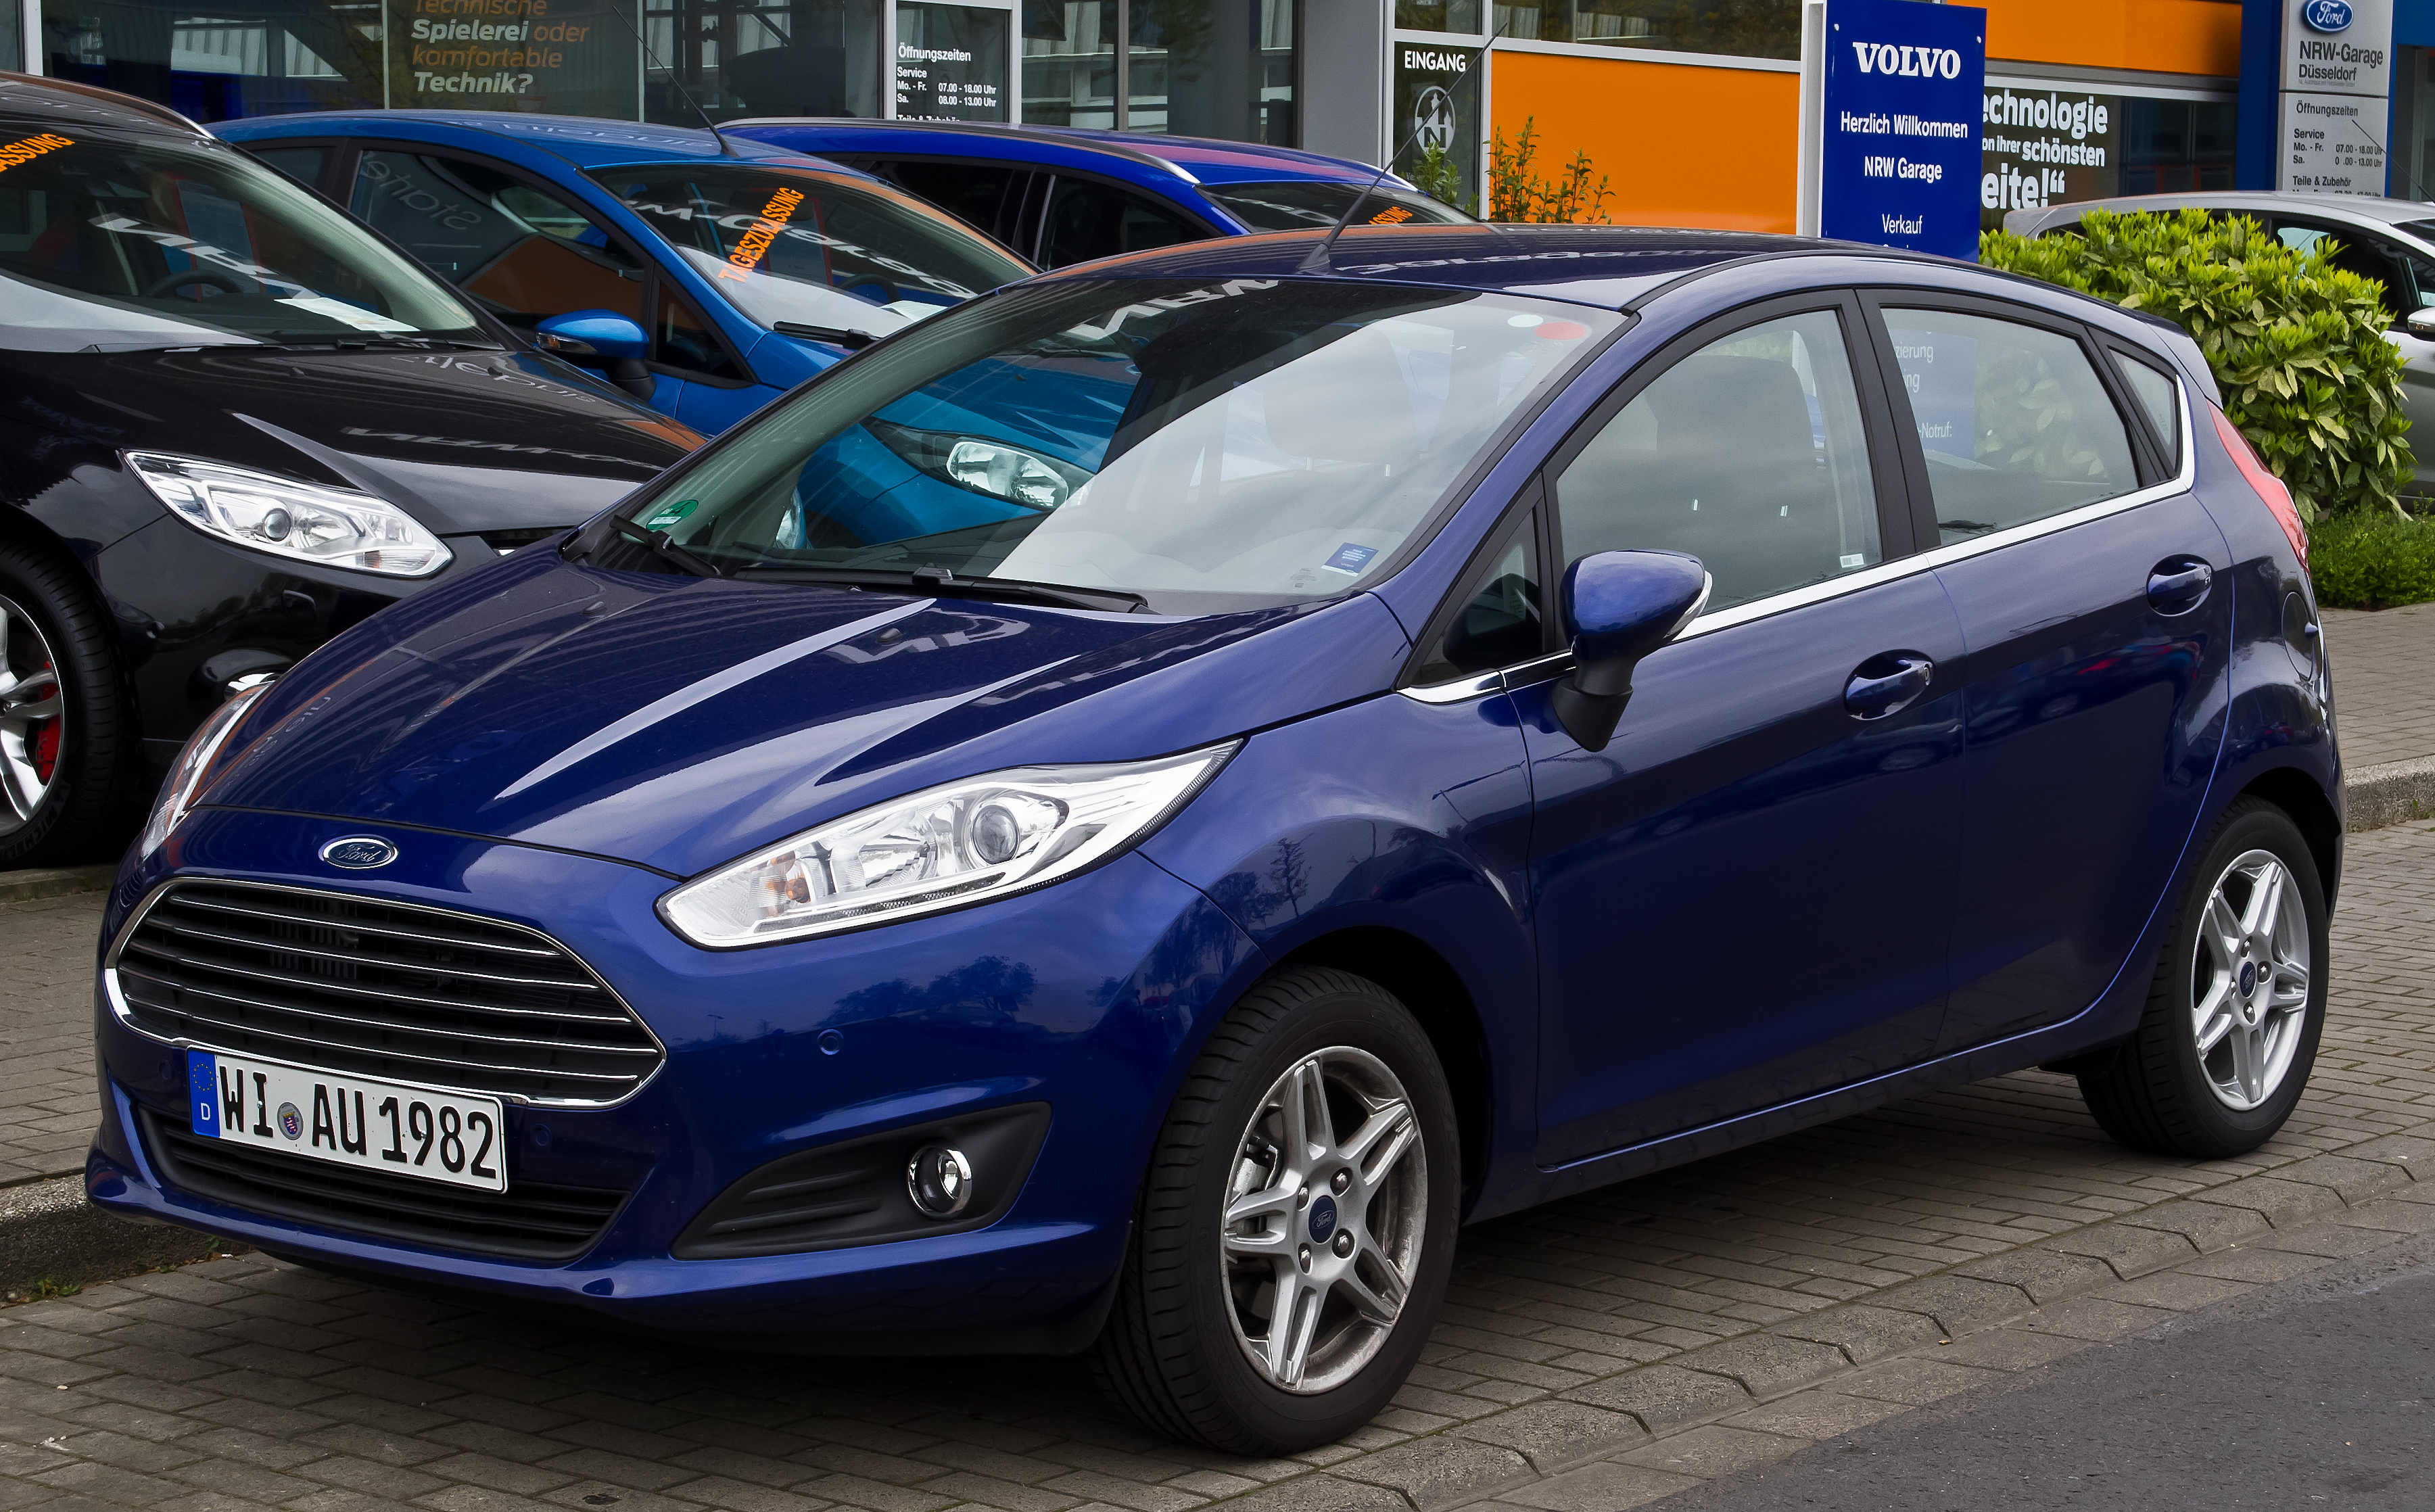 Fiestas Featuring Fords Latest Corporate Front End Started To Appear In Europe Early 2013